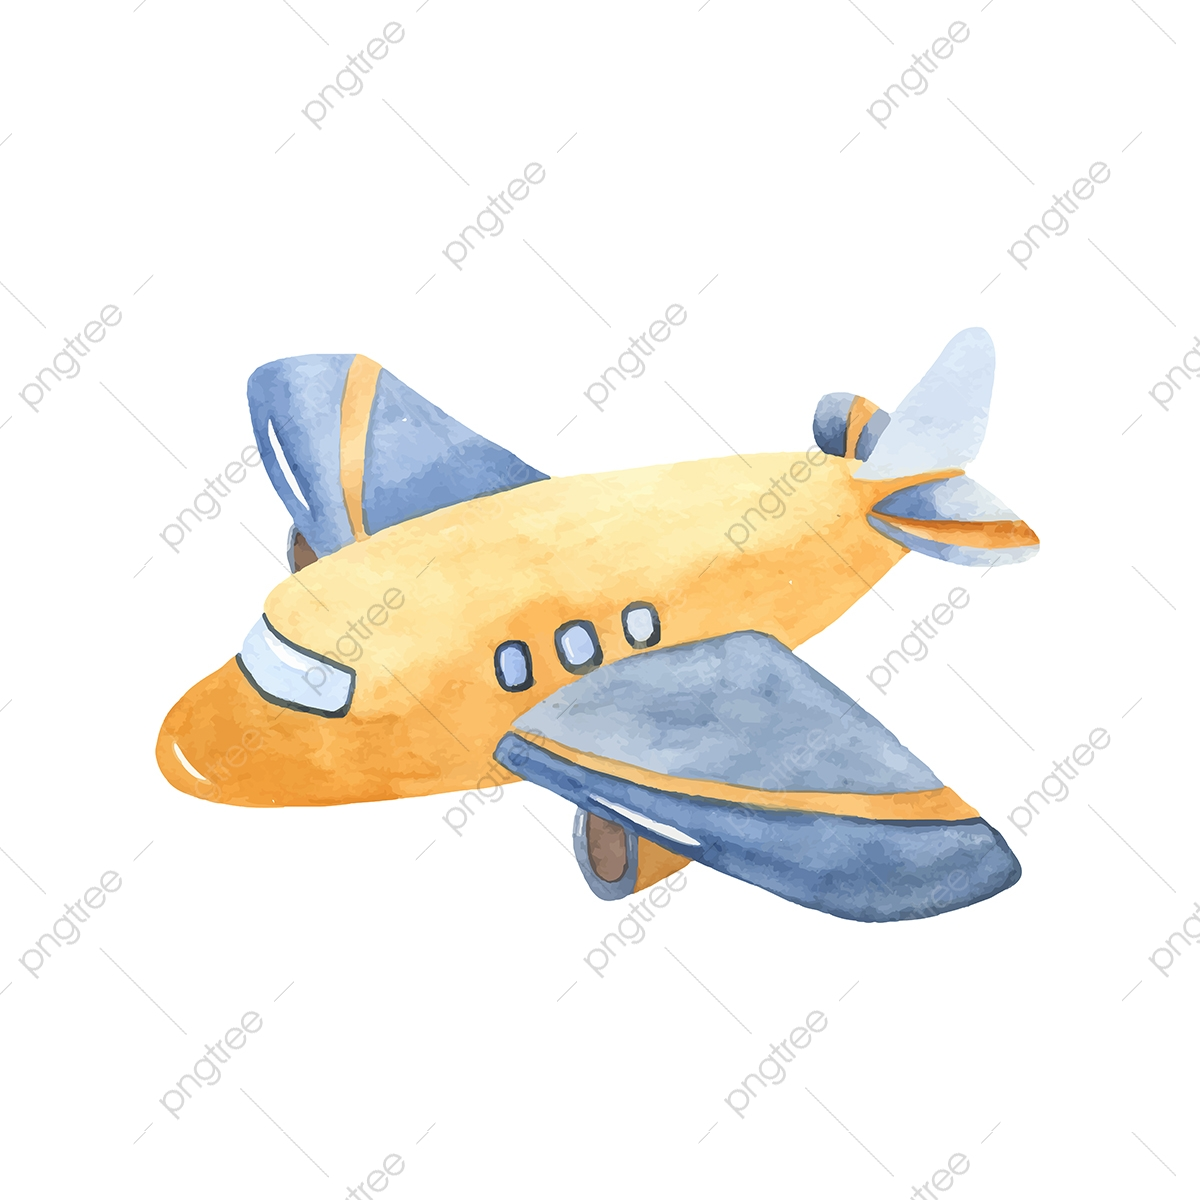 Watercolor Cute Cartoon Airplane Clipart Air Aircraft Airplane Png And Vector With Transparent Background For Free Download